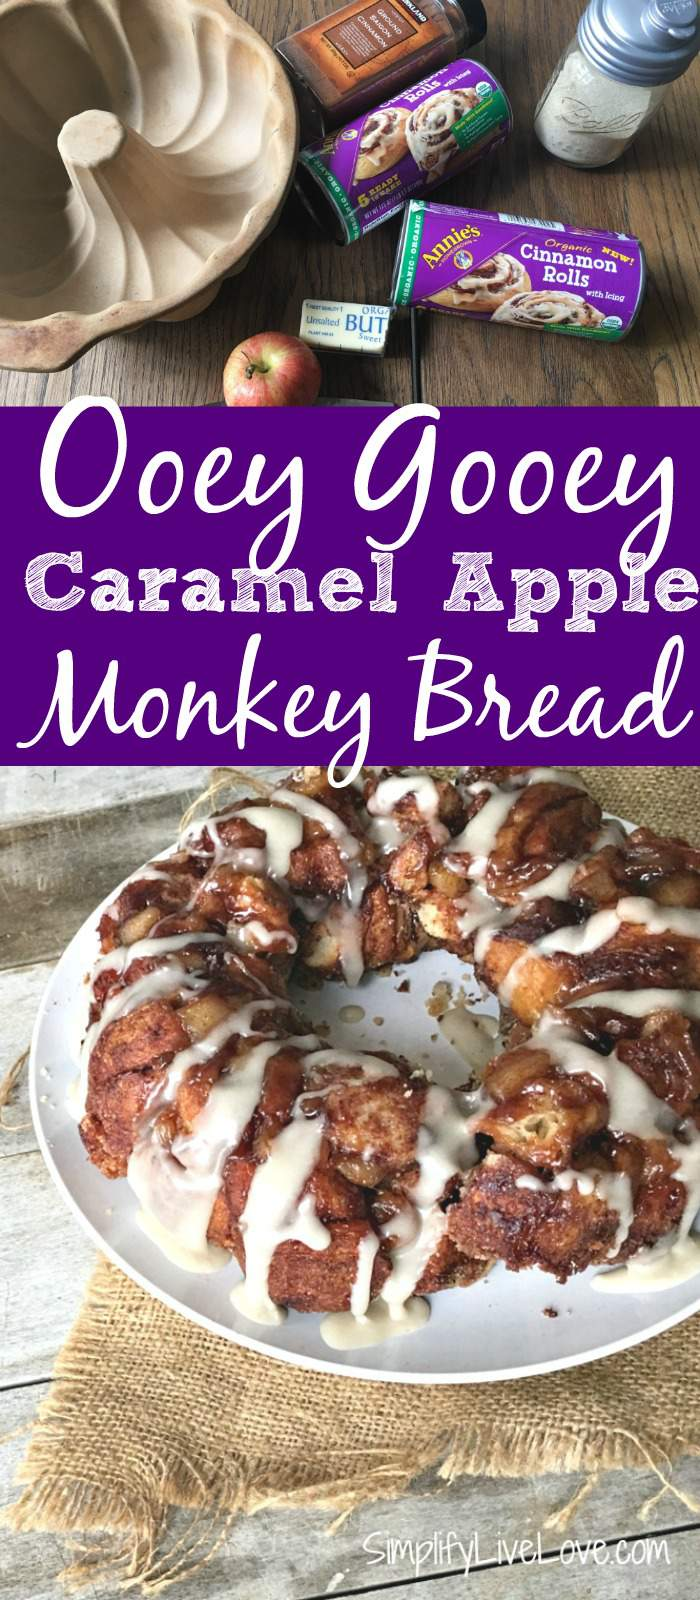 This caramel apple monkey bread made with Annie's Homegrown Organics, features chunks of apples and easy homemade caramel to make an ooey gooey delicious treat your family will love! If you like Annie's Homegrown - you will want to watch this video too! So cute-- srcset=